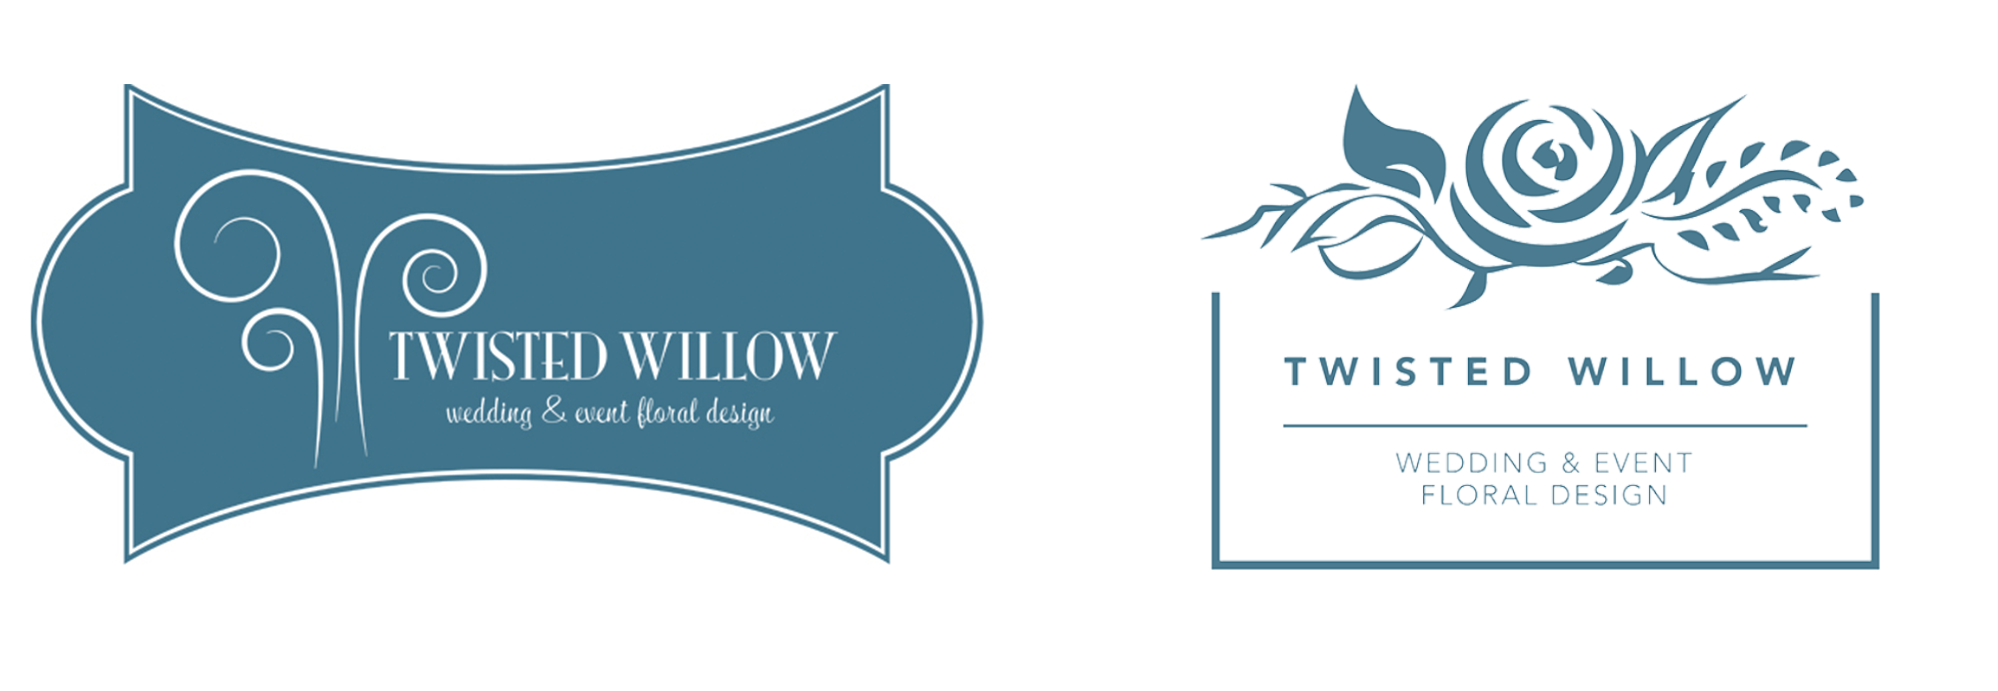 example of wedding florist logo before and after